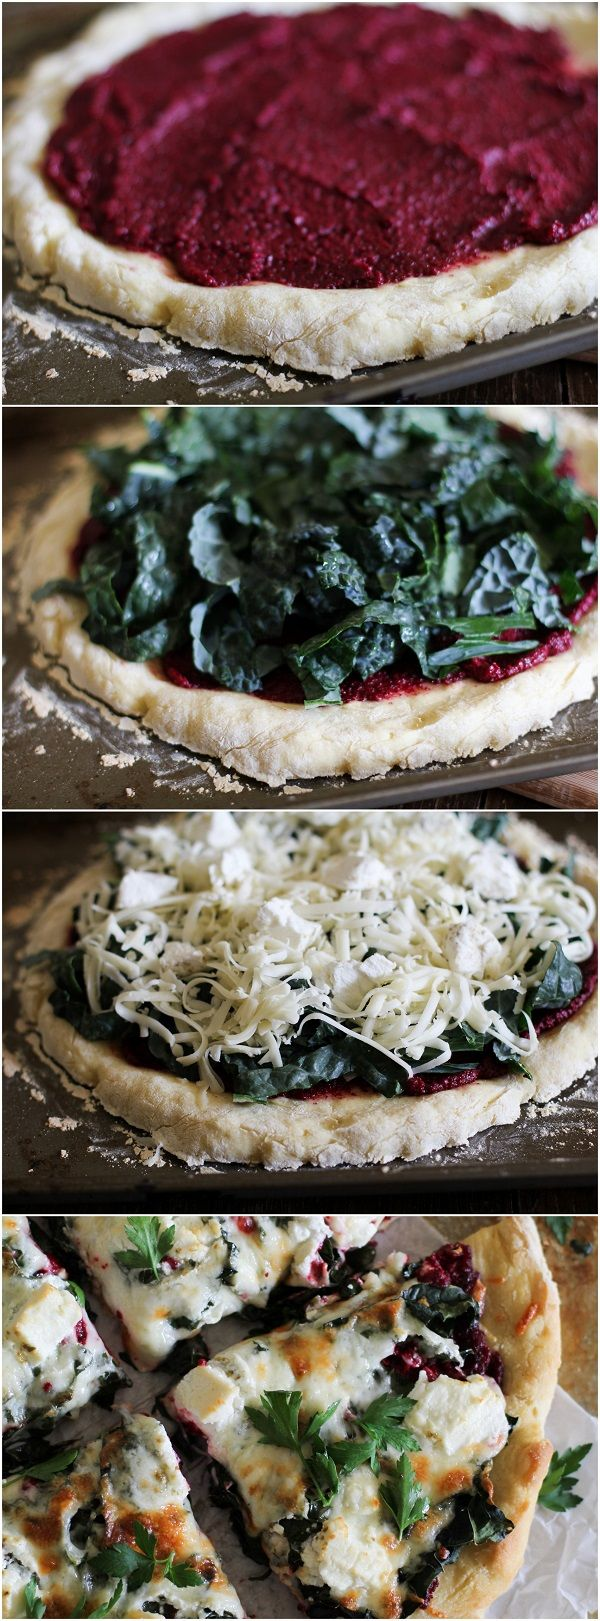 Beet Pesto Pizza with Kale and Goat Cheese 1 lb whole wheat pizza dough 1 cup beet pesto 2 cups kale leaves, thinly sliced 1.5 cups mozzarella cheese, grated 2 ounces goat cheese